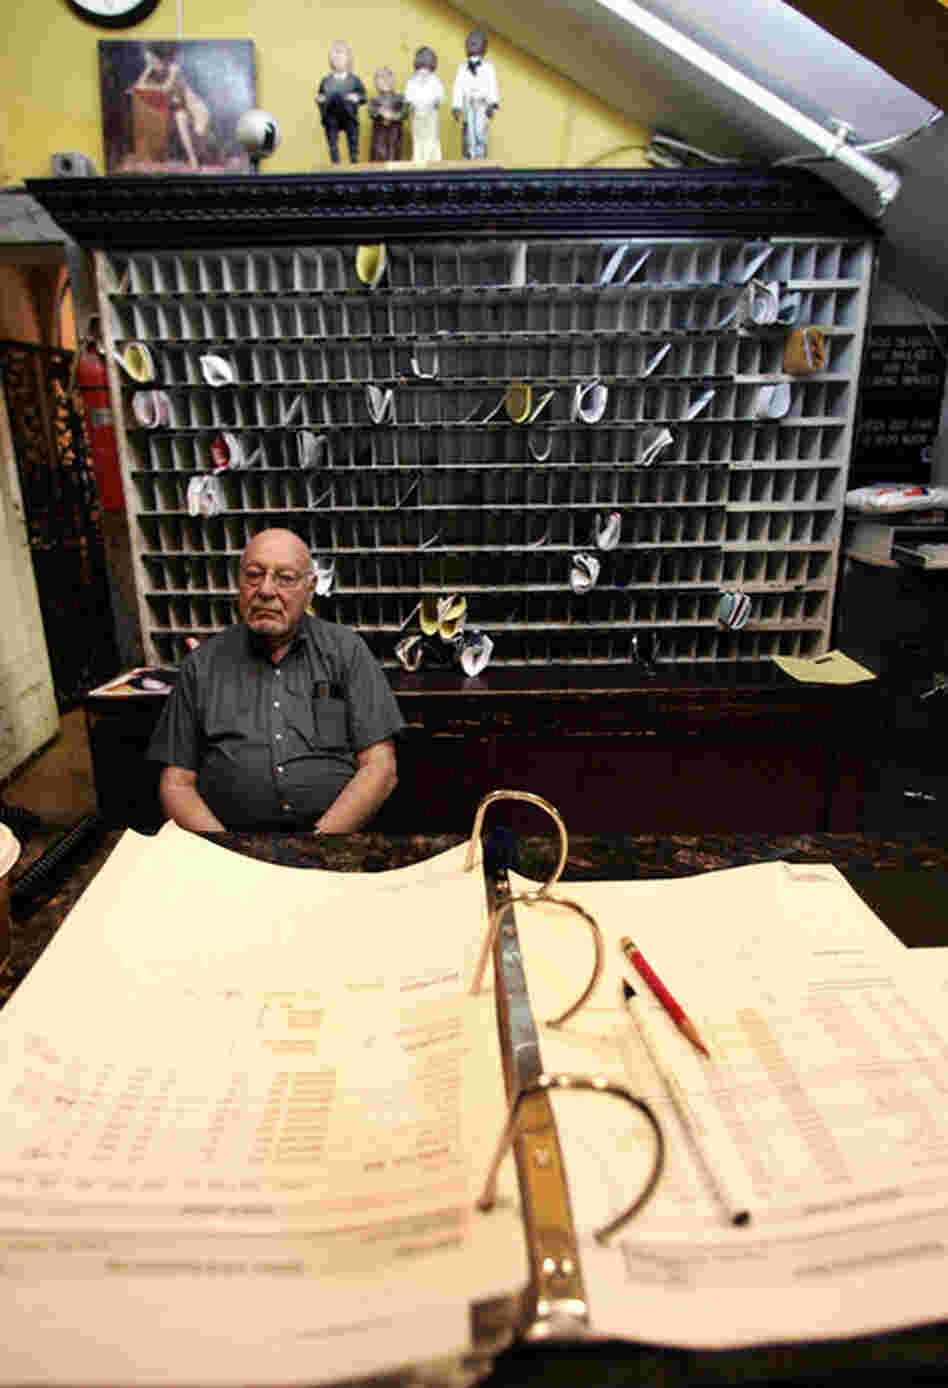 "Front desk manager Jerry Weinstein is shown on duty in June 2007. Since then, most of the Chelsea staff have been let go. ""It was like we didn't have family anymore,"" says long-term resident Nicola L."